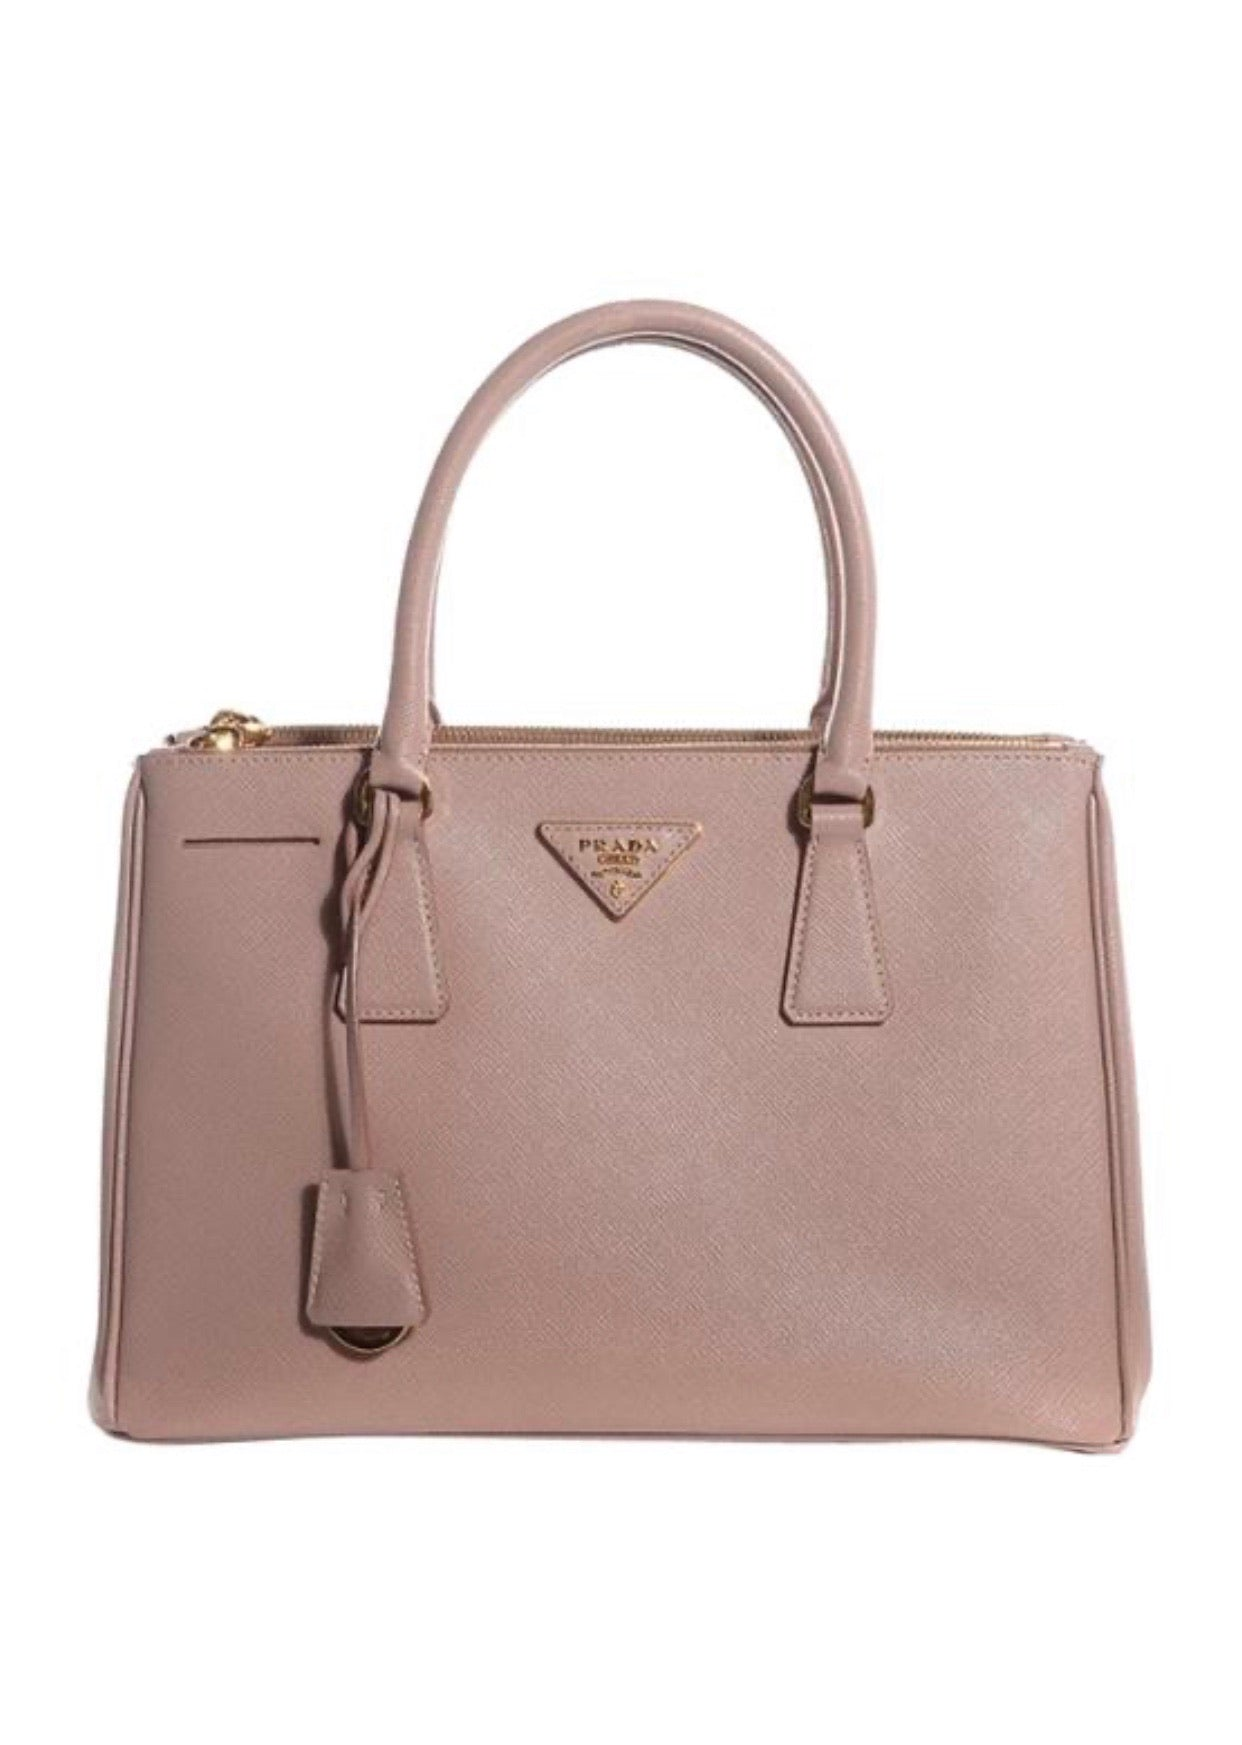 Prada Galleria medium satchel crossbody tote-blush